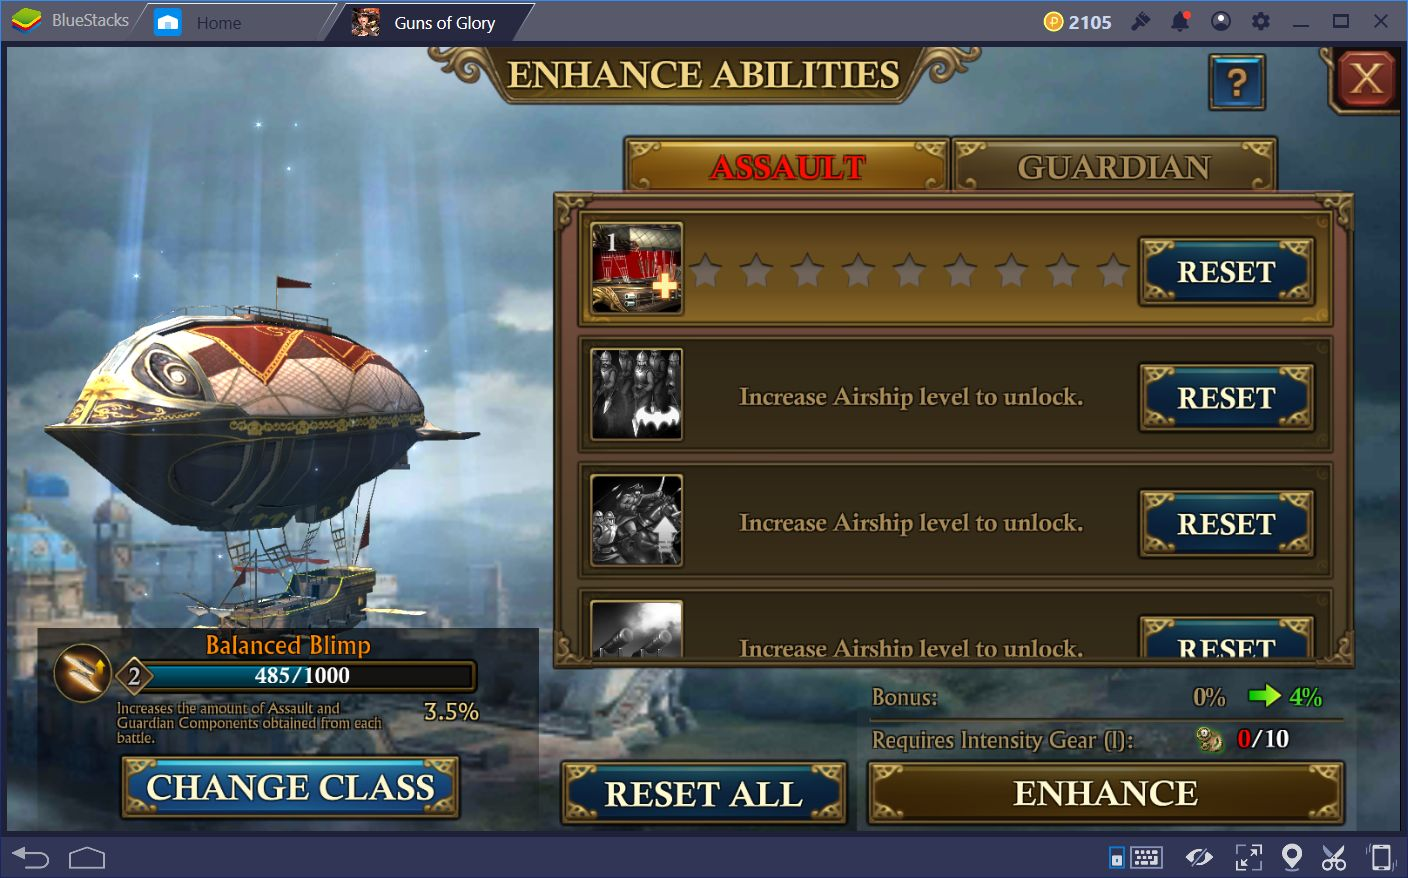 A Guide to the Airship in Guns of Glory on PC